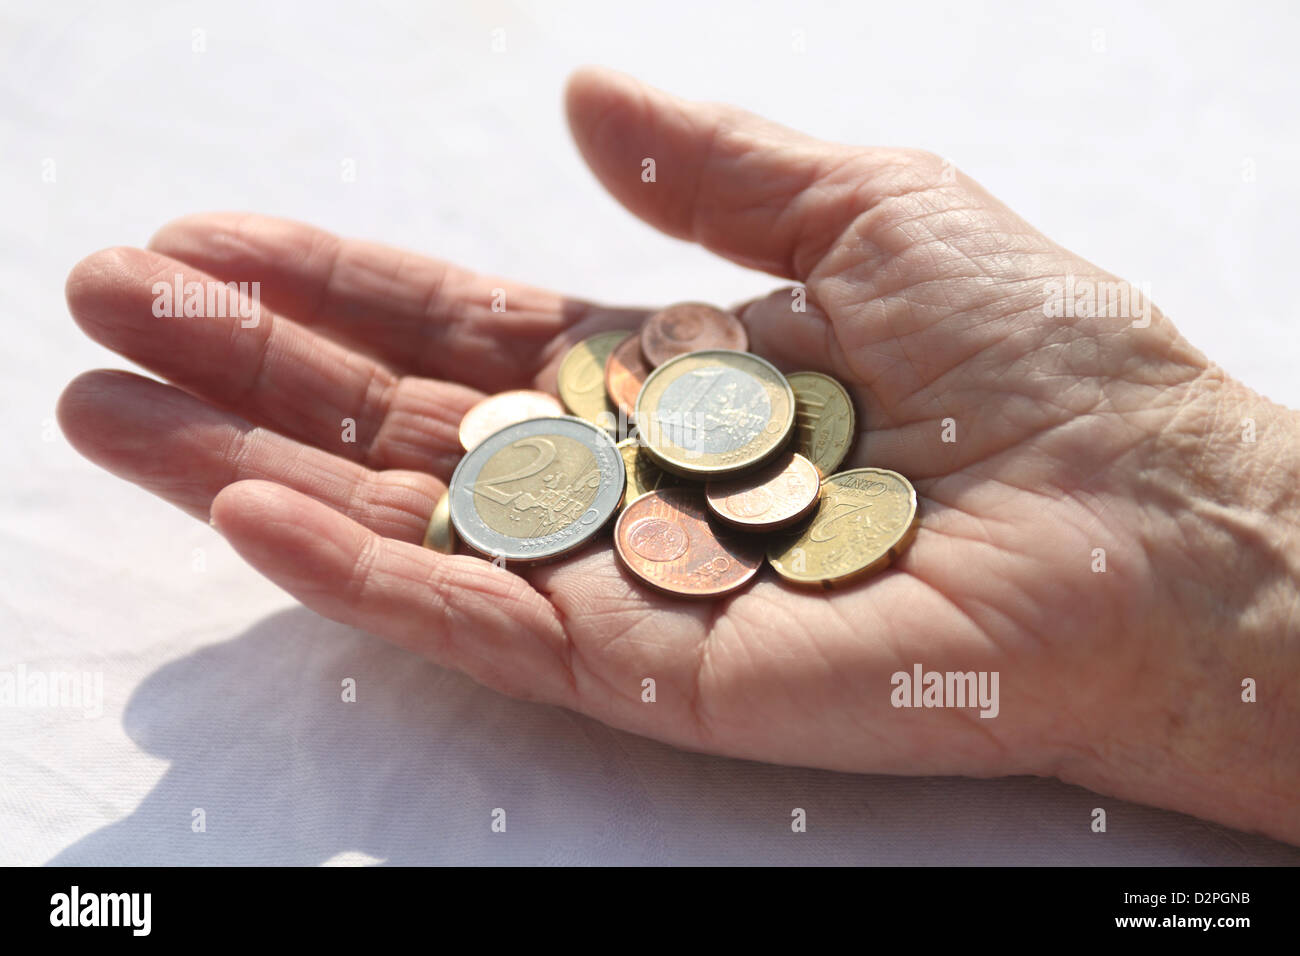 Berlin, Germany, Euromuenzen are in the hands of a pensioner - Stock Image